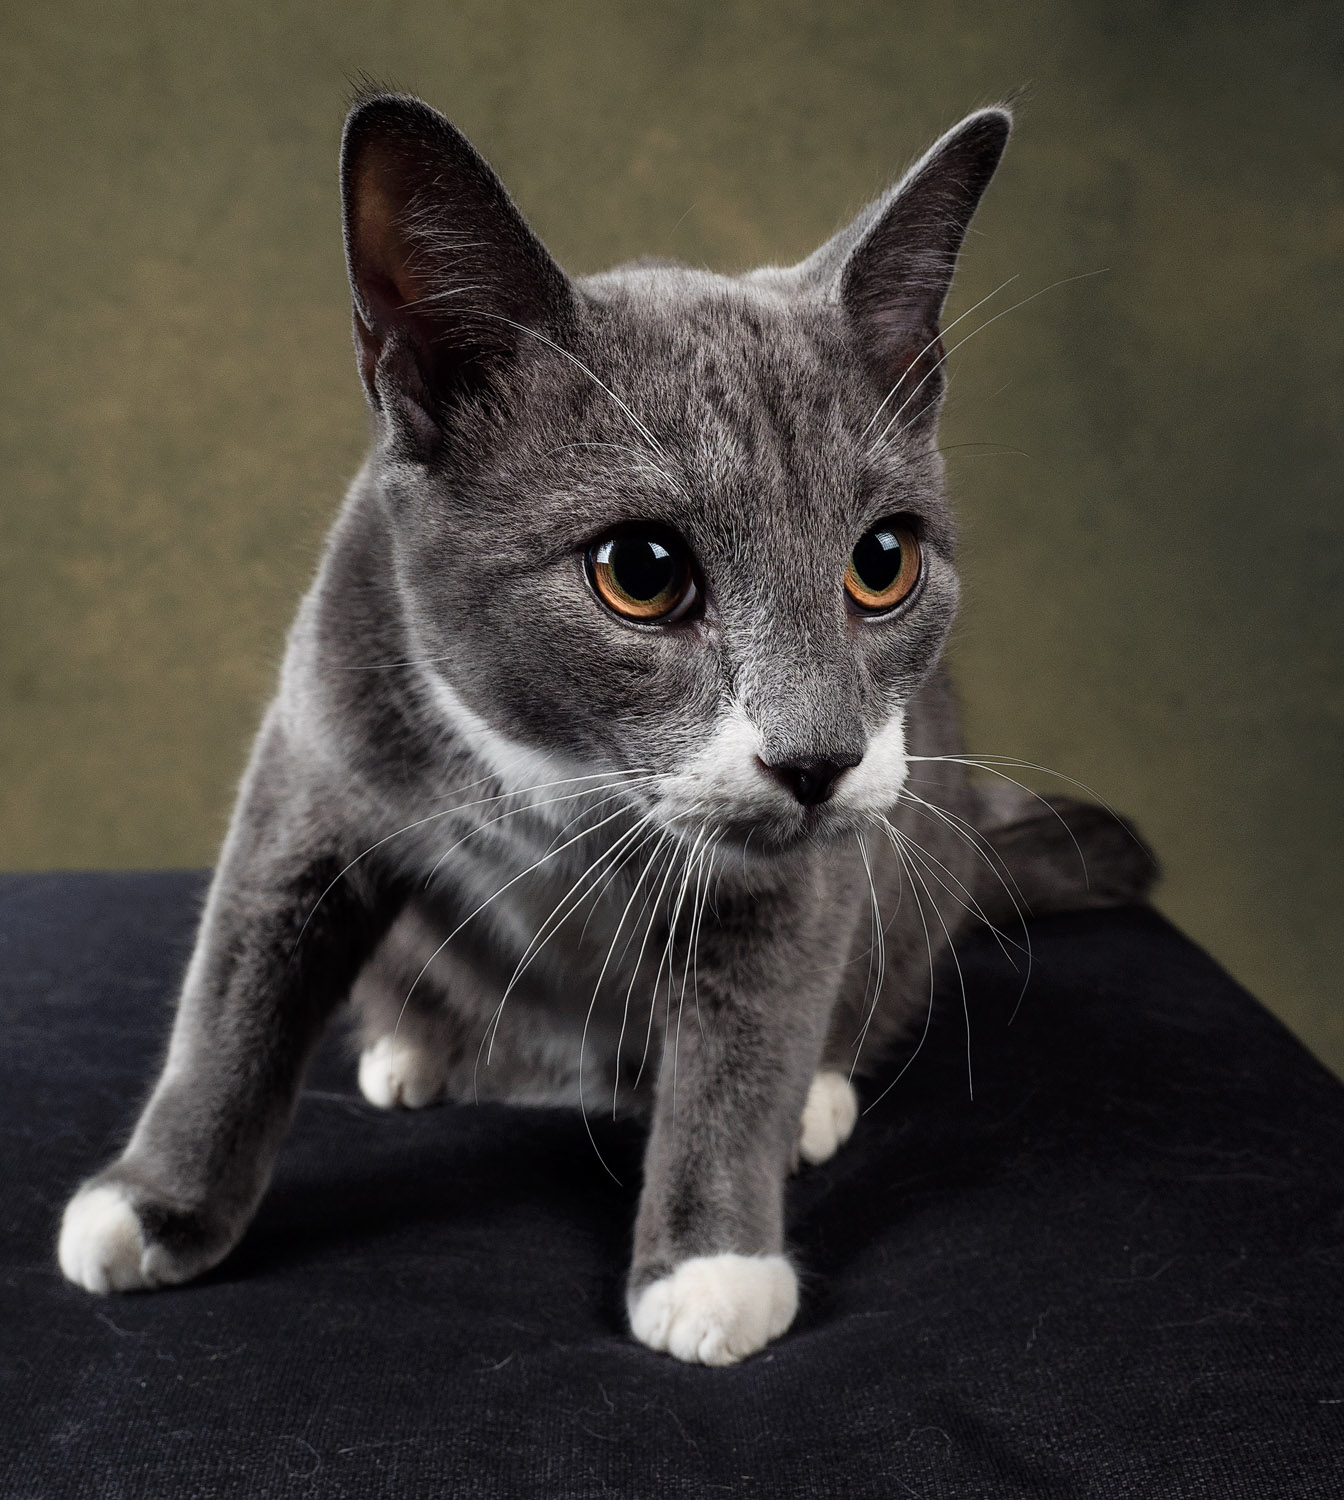 grey and white cat - Tips for Great Lighting for Pet Photography